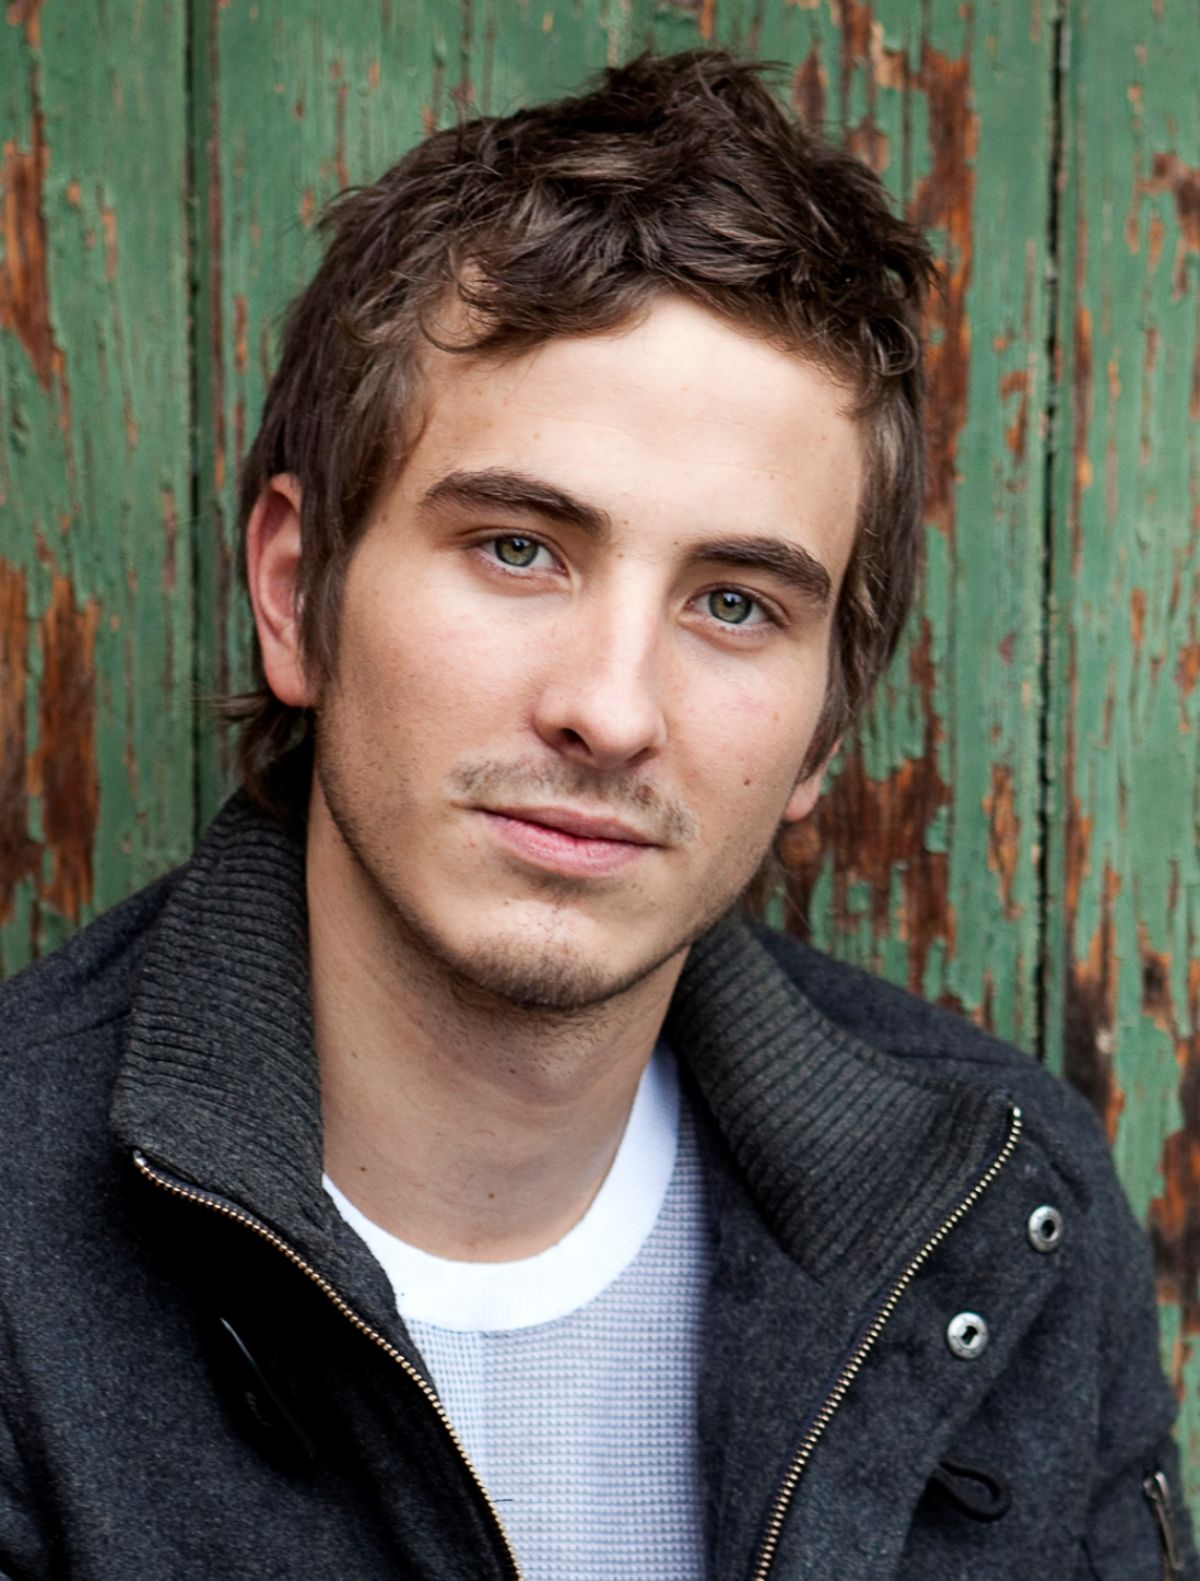 ryan corr filmographyryan corr movies, ryan corr filmography, ryan corr instagram, ryan corr craig stott, ryan corr wikipedia, ryan corr, ryan corr twitter, ryan corr facebook, ryan corr girlfriend, ryan corr imdb, ryan corr and dena kaplan, ryan corr girlfriend 2015, ryan corr drugs, ryan corr biography, ryan corr holding the man, ryan corr partner, ryan corr banished, ryan corr interview, ryan corr new movie, ryan corr imogen bailey